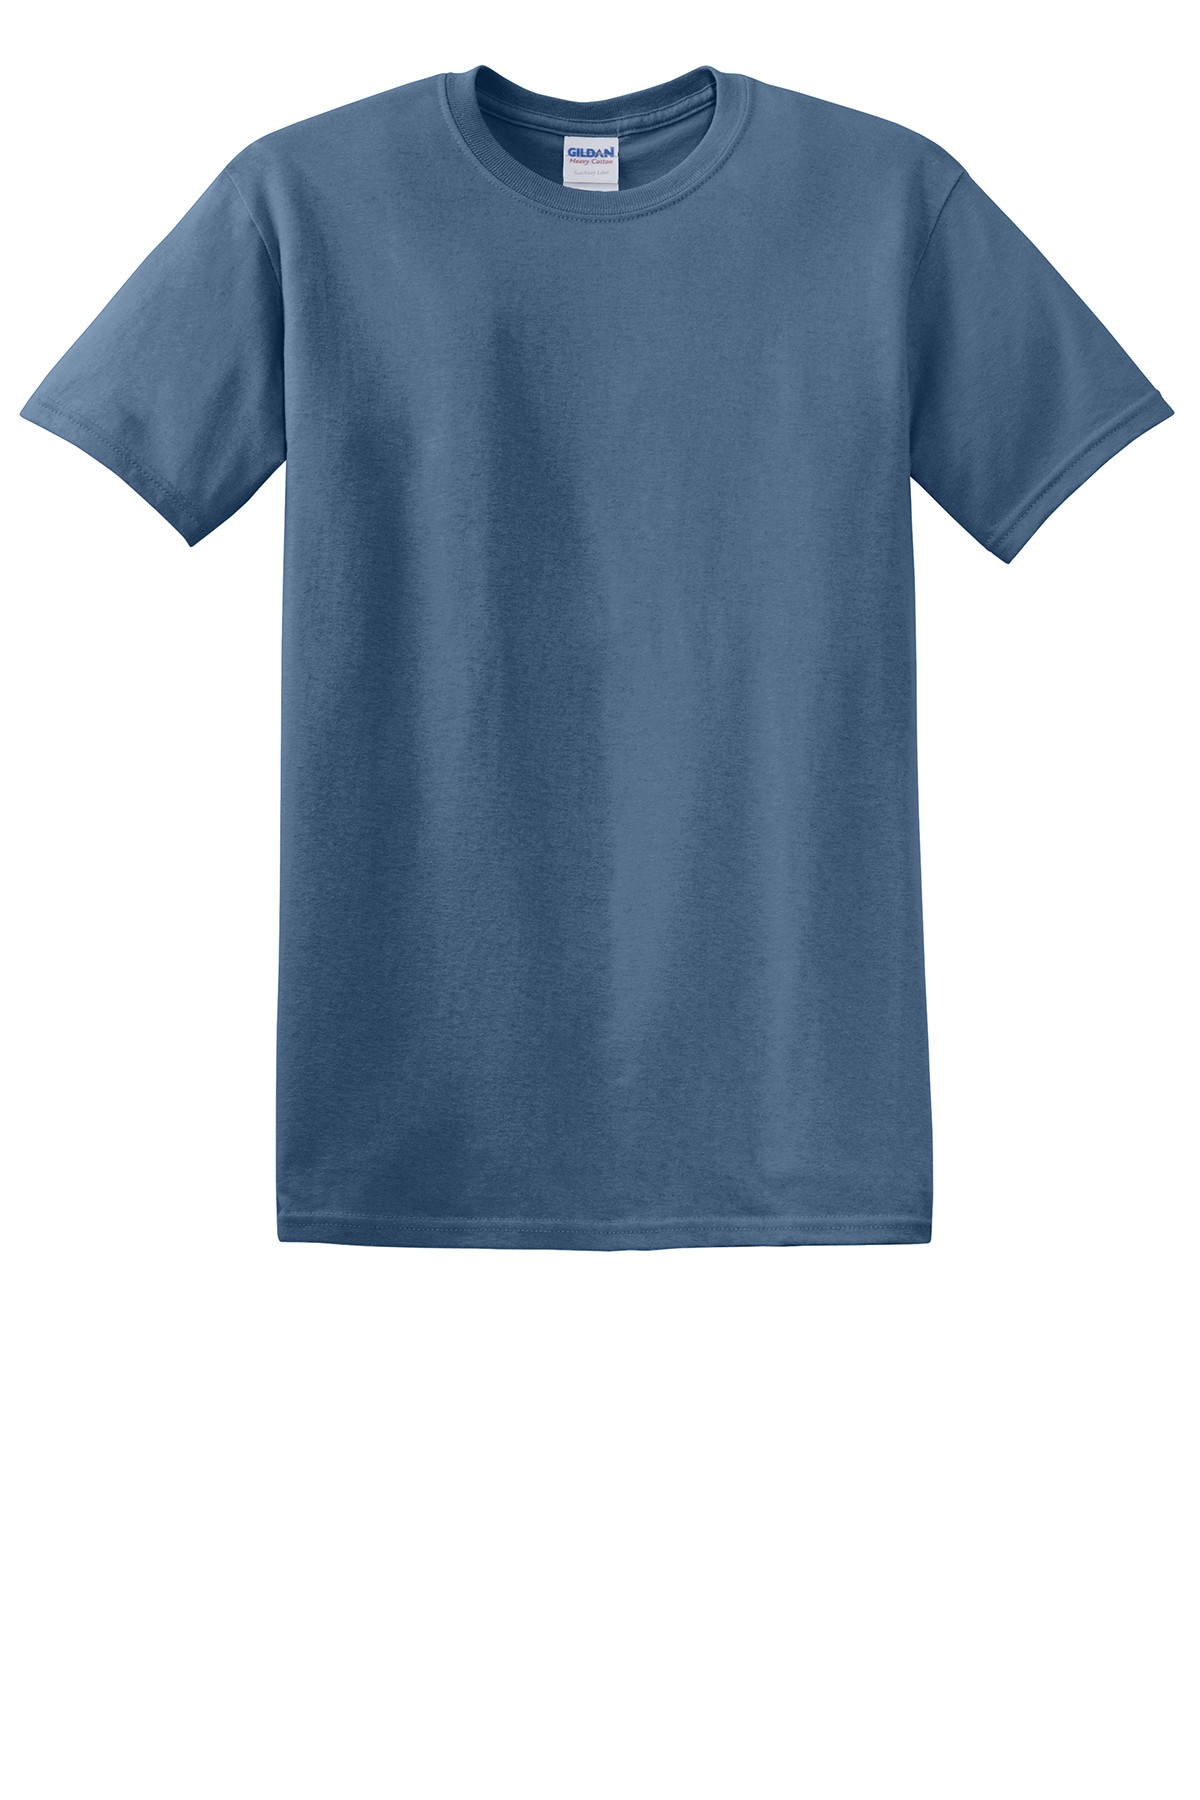 c99a6f23 ... Gildan® - Heavy Cotton™ 100% Cotton T-Shirt. A maximum of 8 logos have  been uploaded. Please remove a logo from My Logos to continue